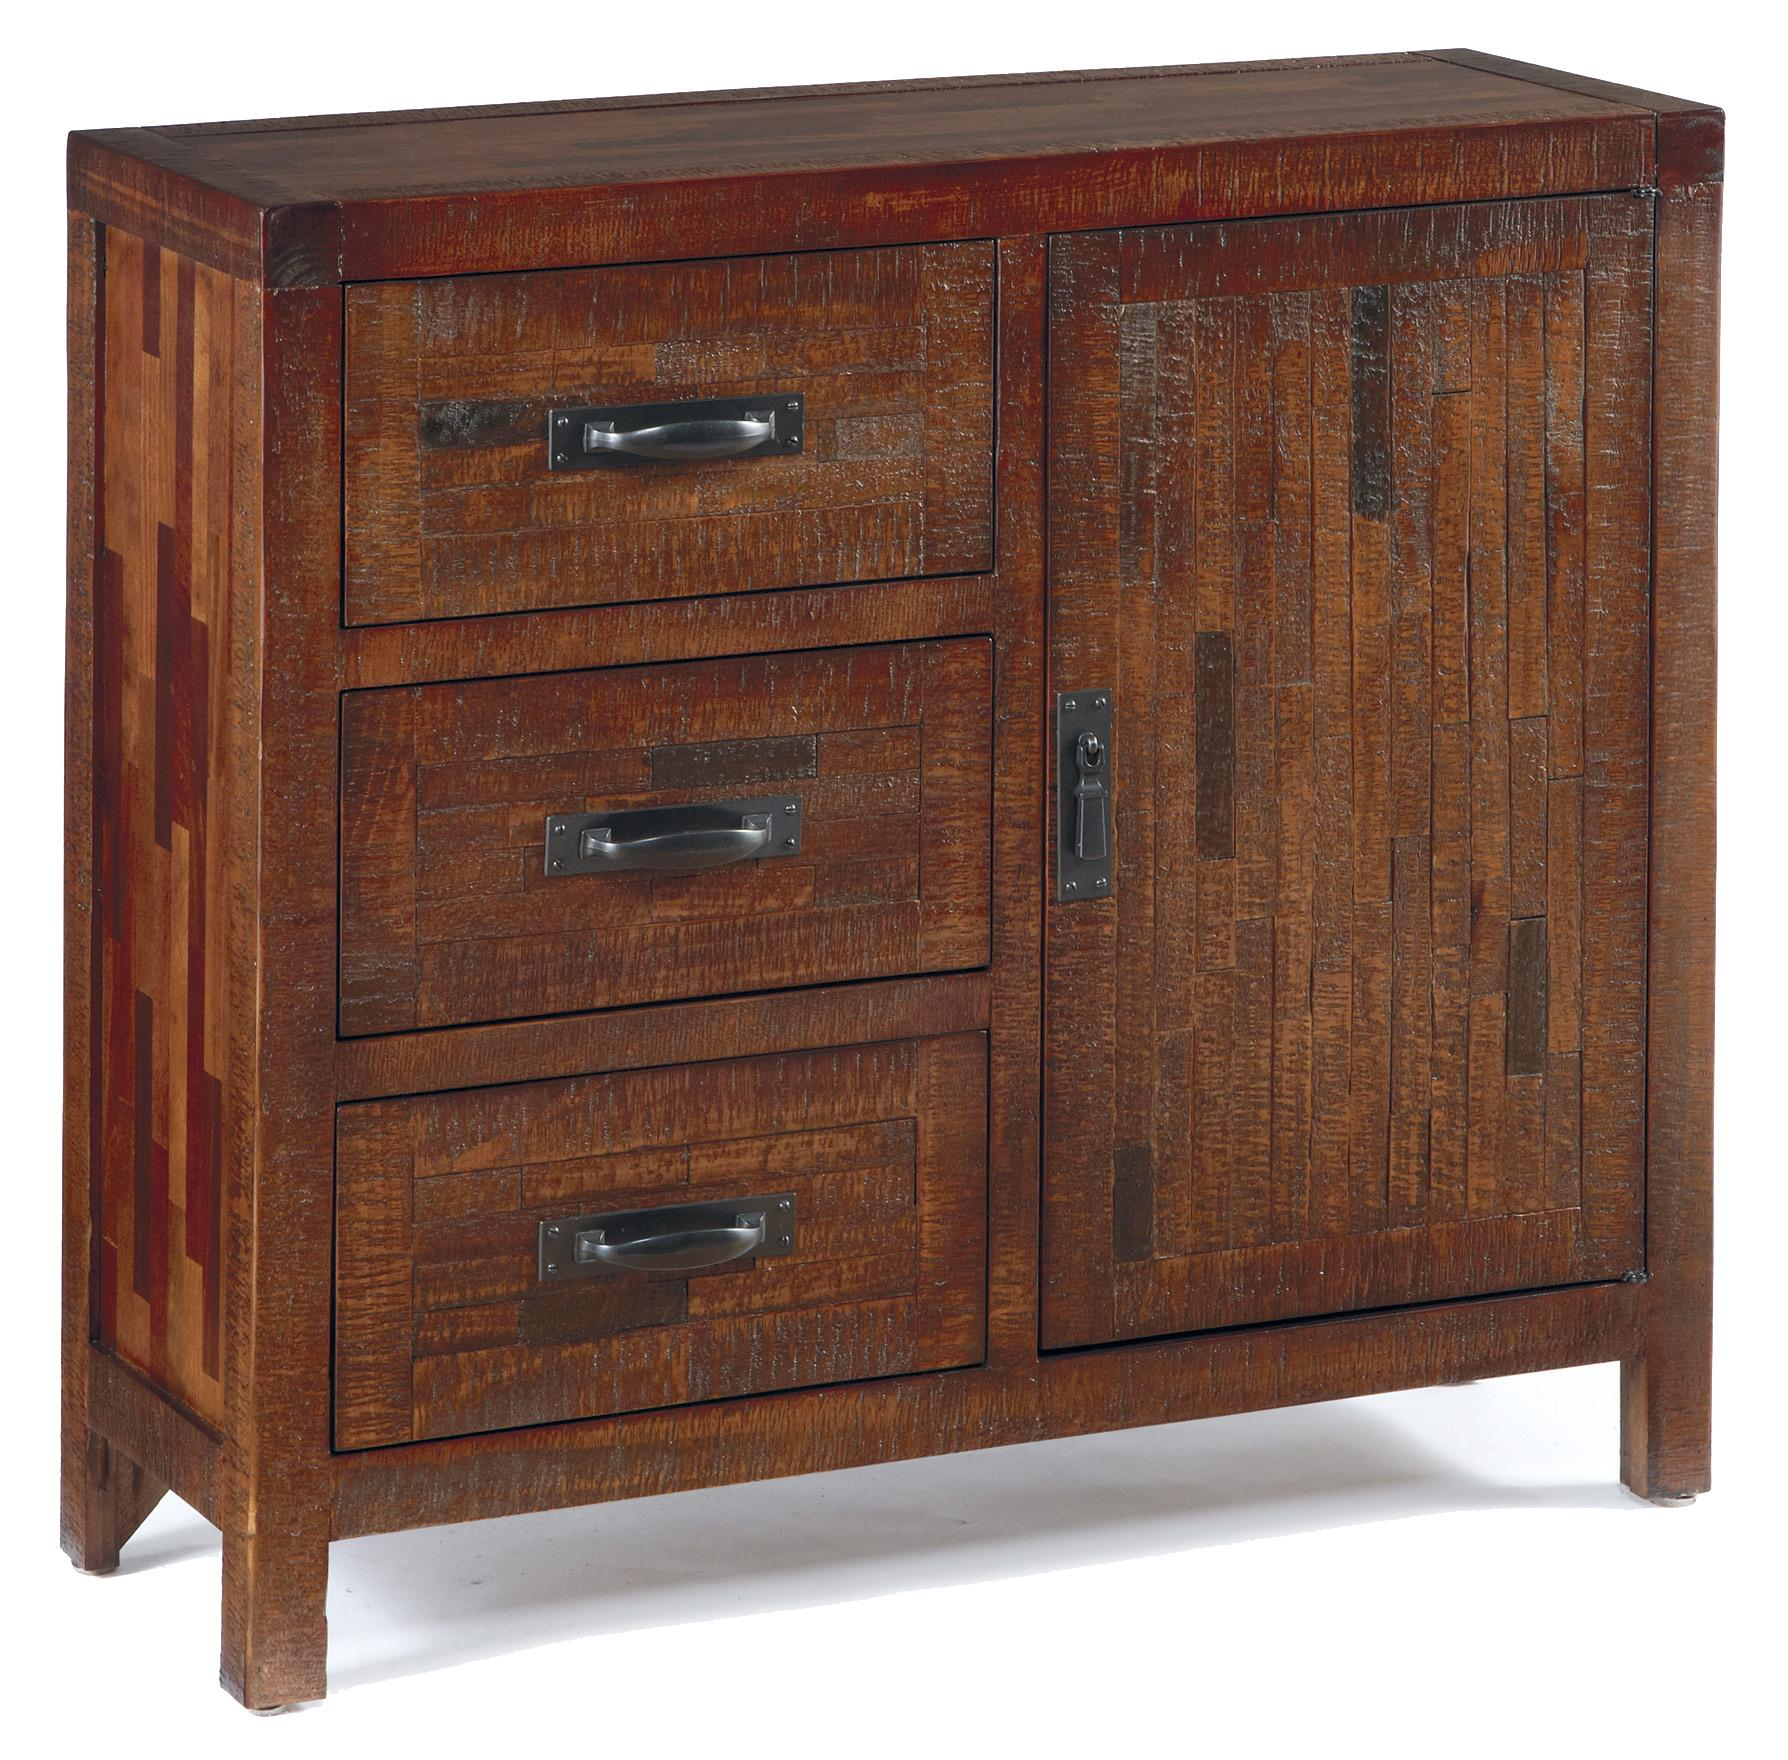 Signature Design by Ashley Vennilux Accent Cabinet - Item Number: T500-430